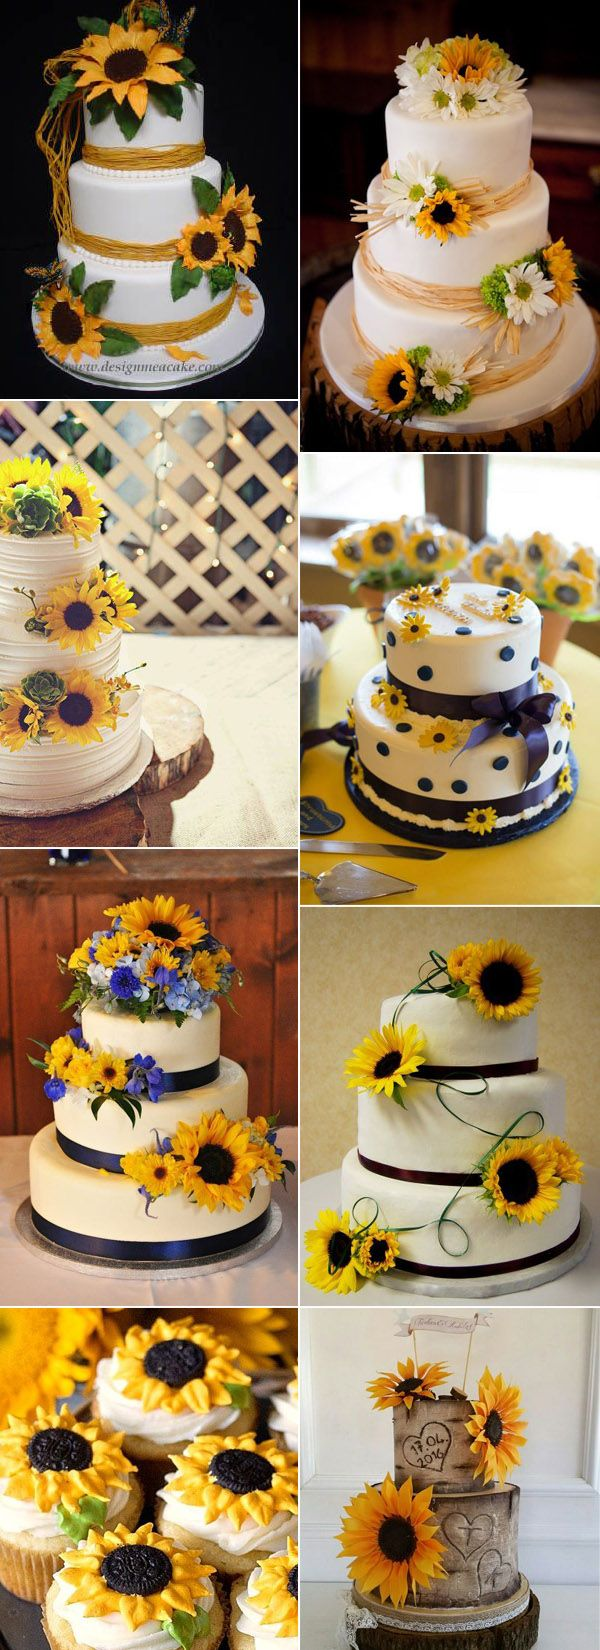 Let them eat cake rustic wedding chic - 40 Super Cool Ideas To Incorporate Sunflowers To Your Wedding Sunflower Wedding Cakesfall Weddingrustic